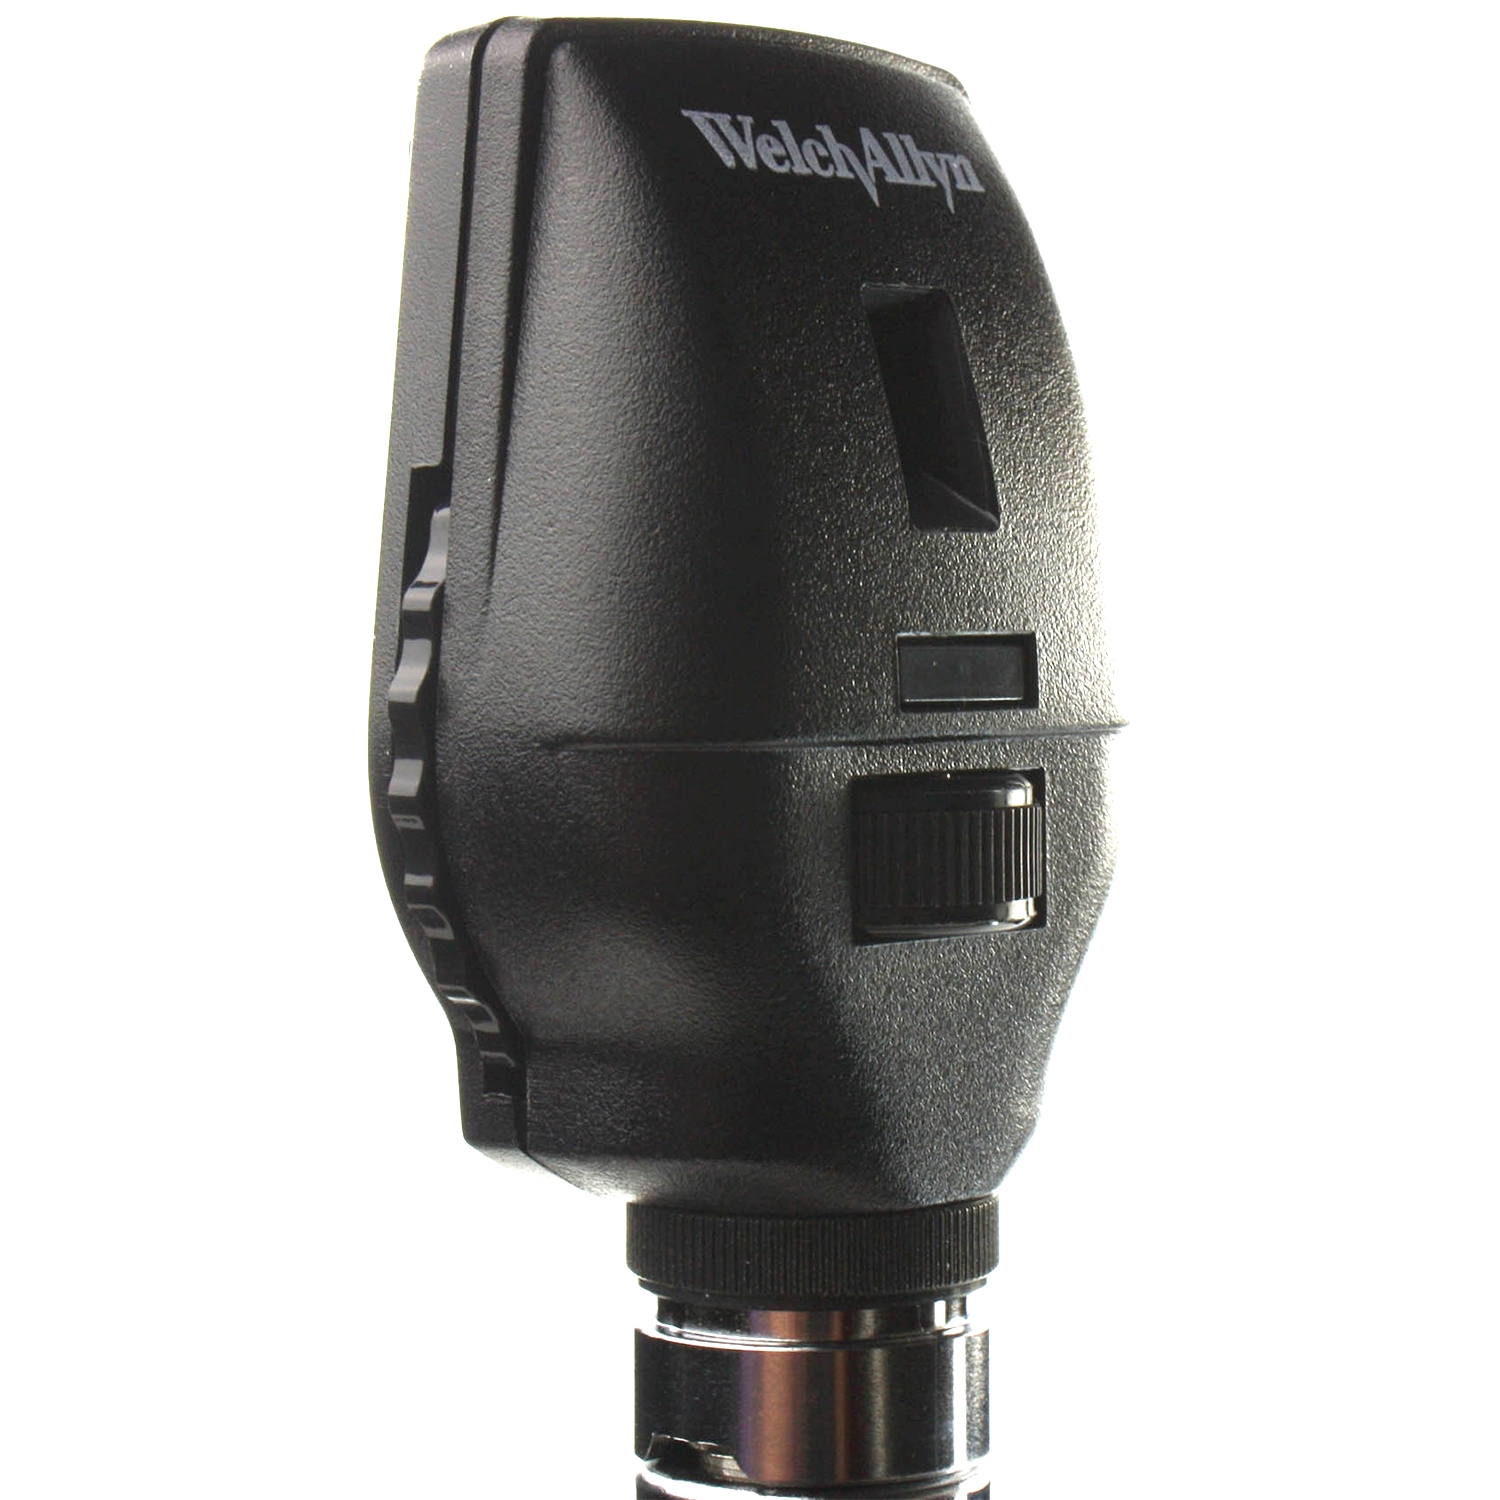 WelchAllyn Tête ophthalmoscope 3,5V